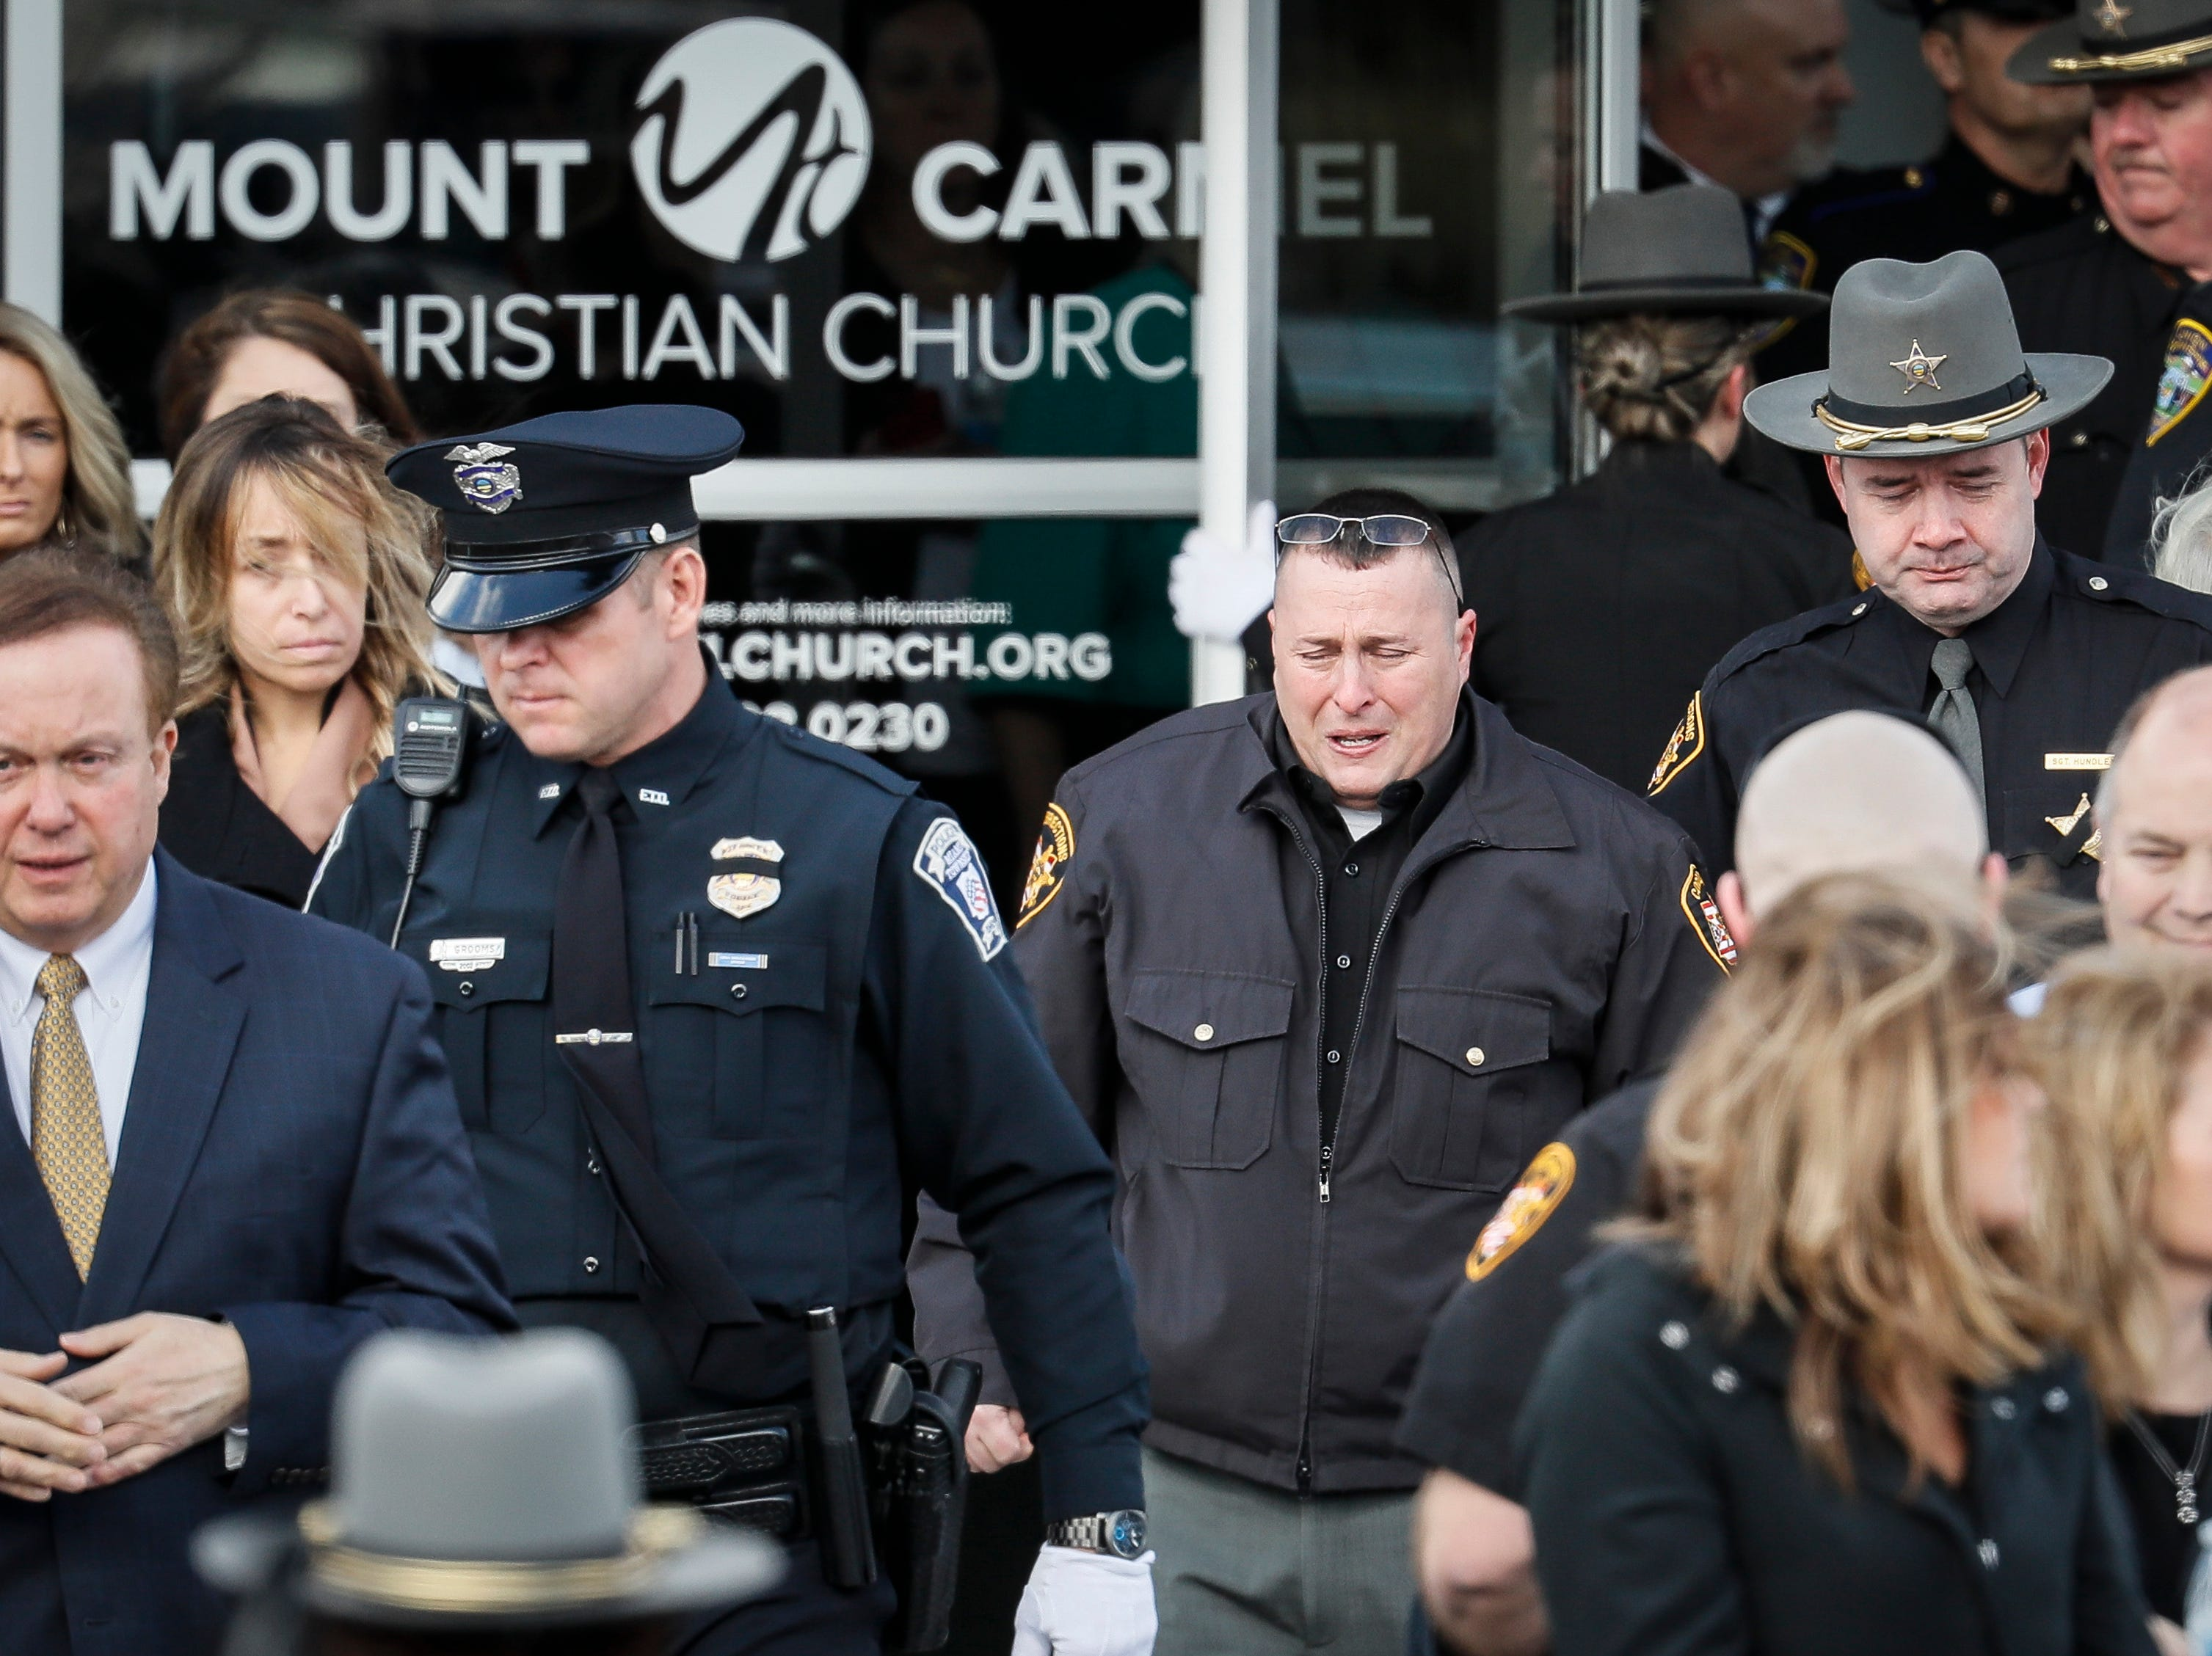 Officers react after the casket of Detective Bill Brewer, a 20-year veteran of the Clermont County Sheriff's Office, is placed into a hearse outside of Mt. Carmel Christian Church during funeral ceremonies, Friday, Feb. 8, 2019, in Batavia, Ohio. Authorities in the Cincinnati region are reeling after the deaths of five police officers in less than two months. (AP Photo/John Minchillo)